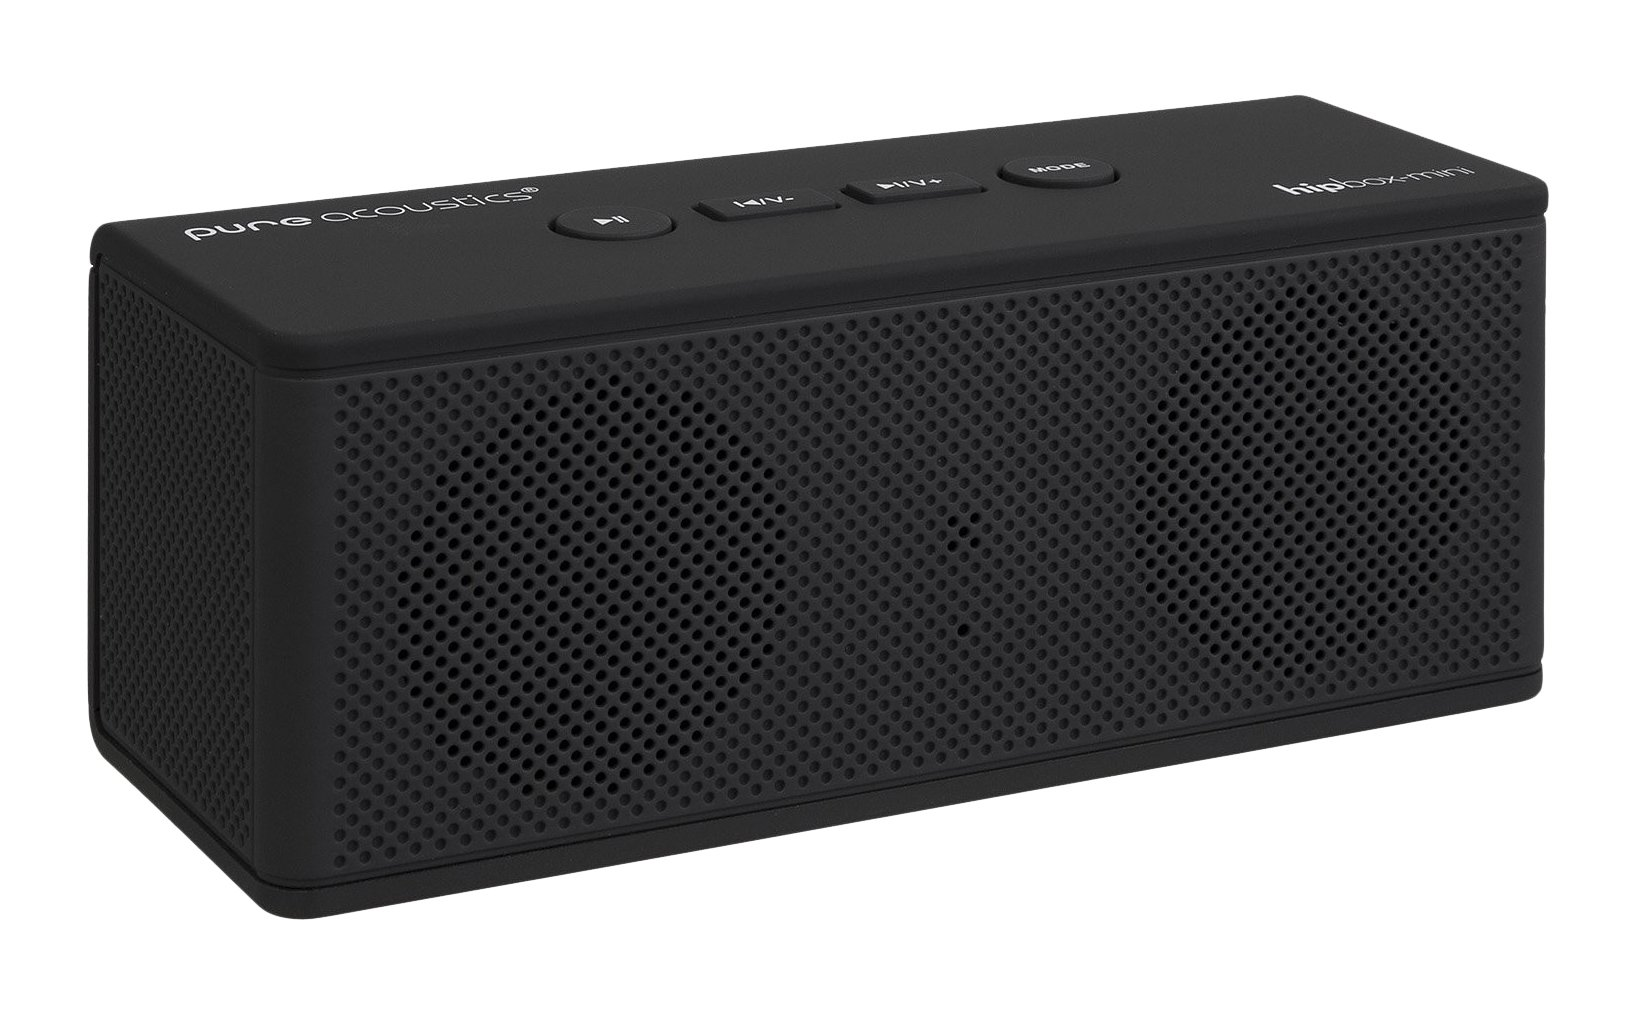 Pure Acoustics PU-HIP853 Portable 3-Channel Home Theater Speaker System, Black